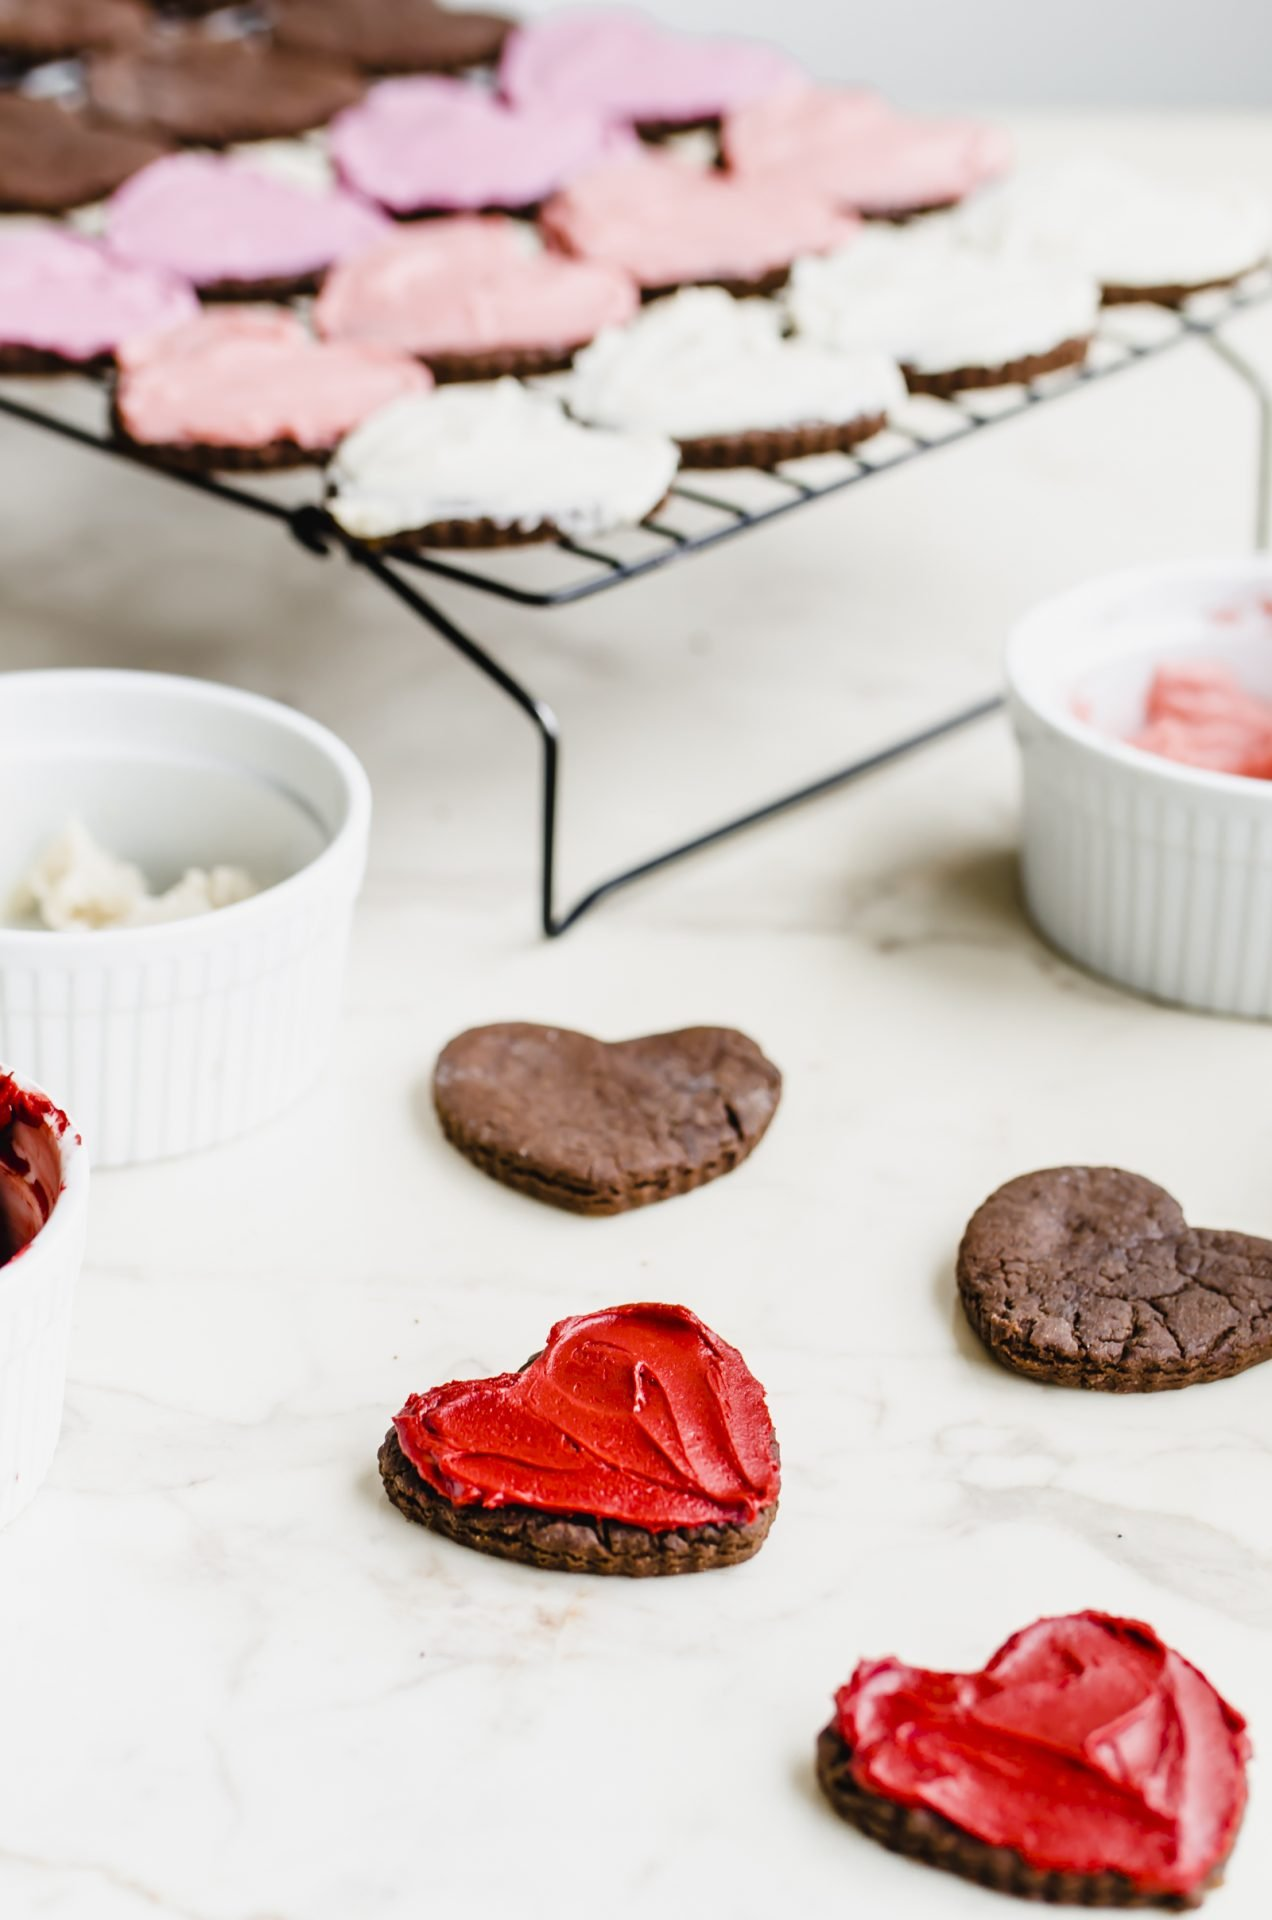 Frosted heart chocolate cutout cookies on a white countertop with bowls of frosting on the side.